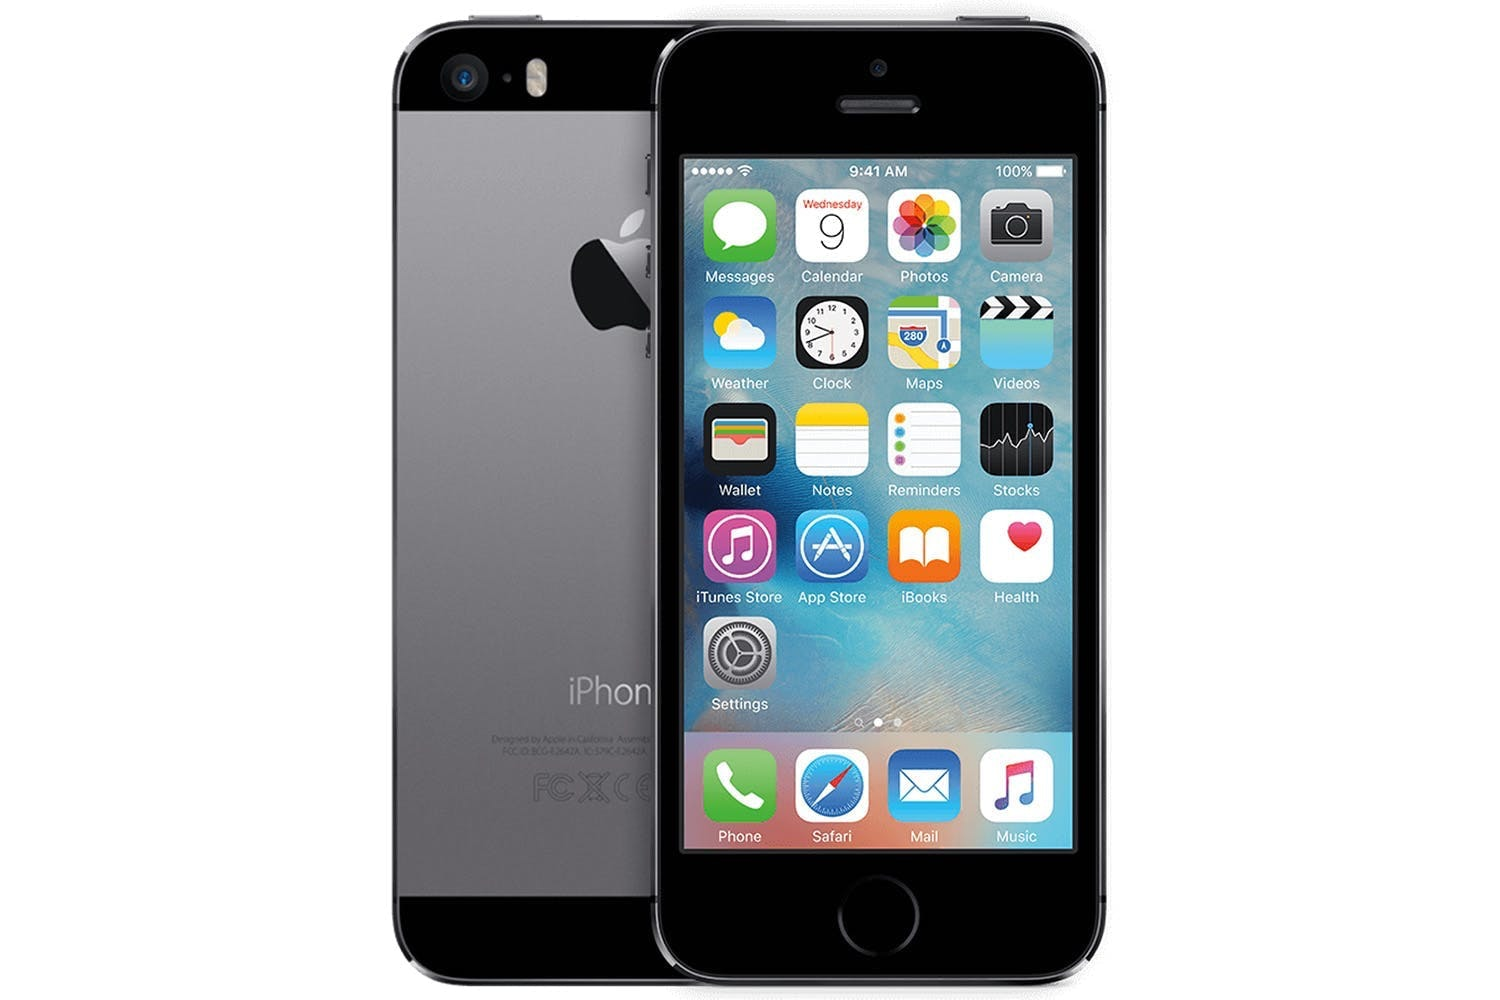 Mint+ Premium iPhone 5S | 16GB | Space Grey